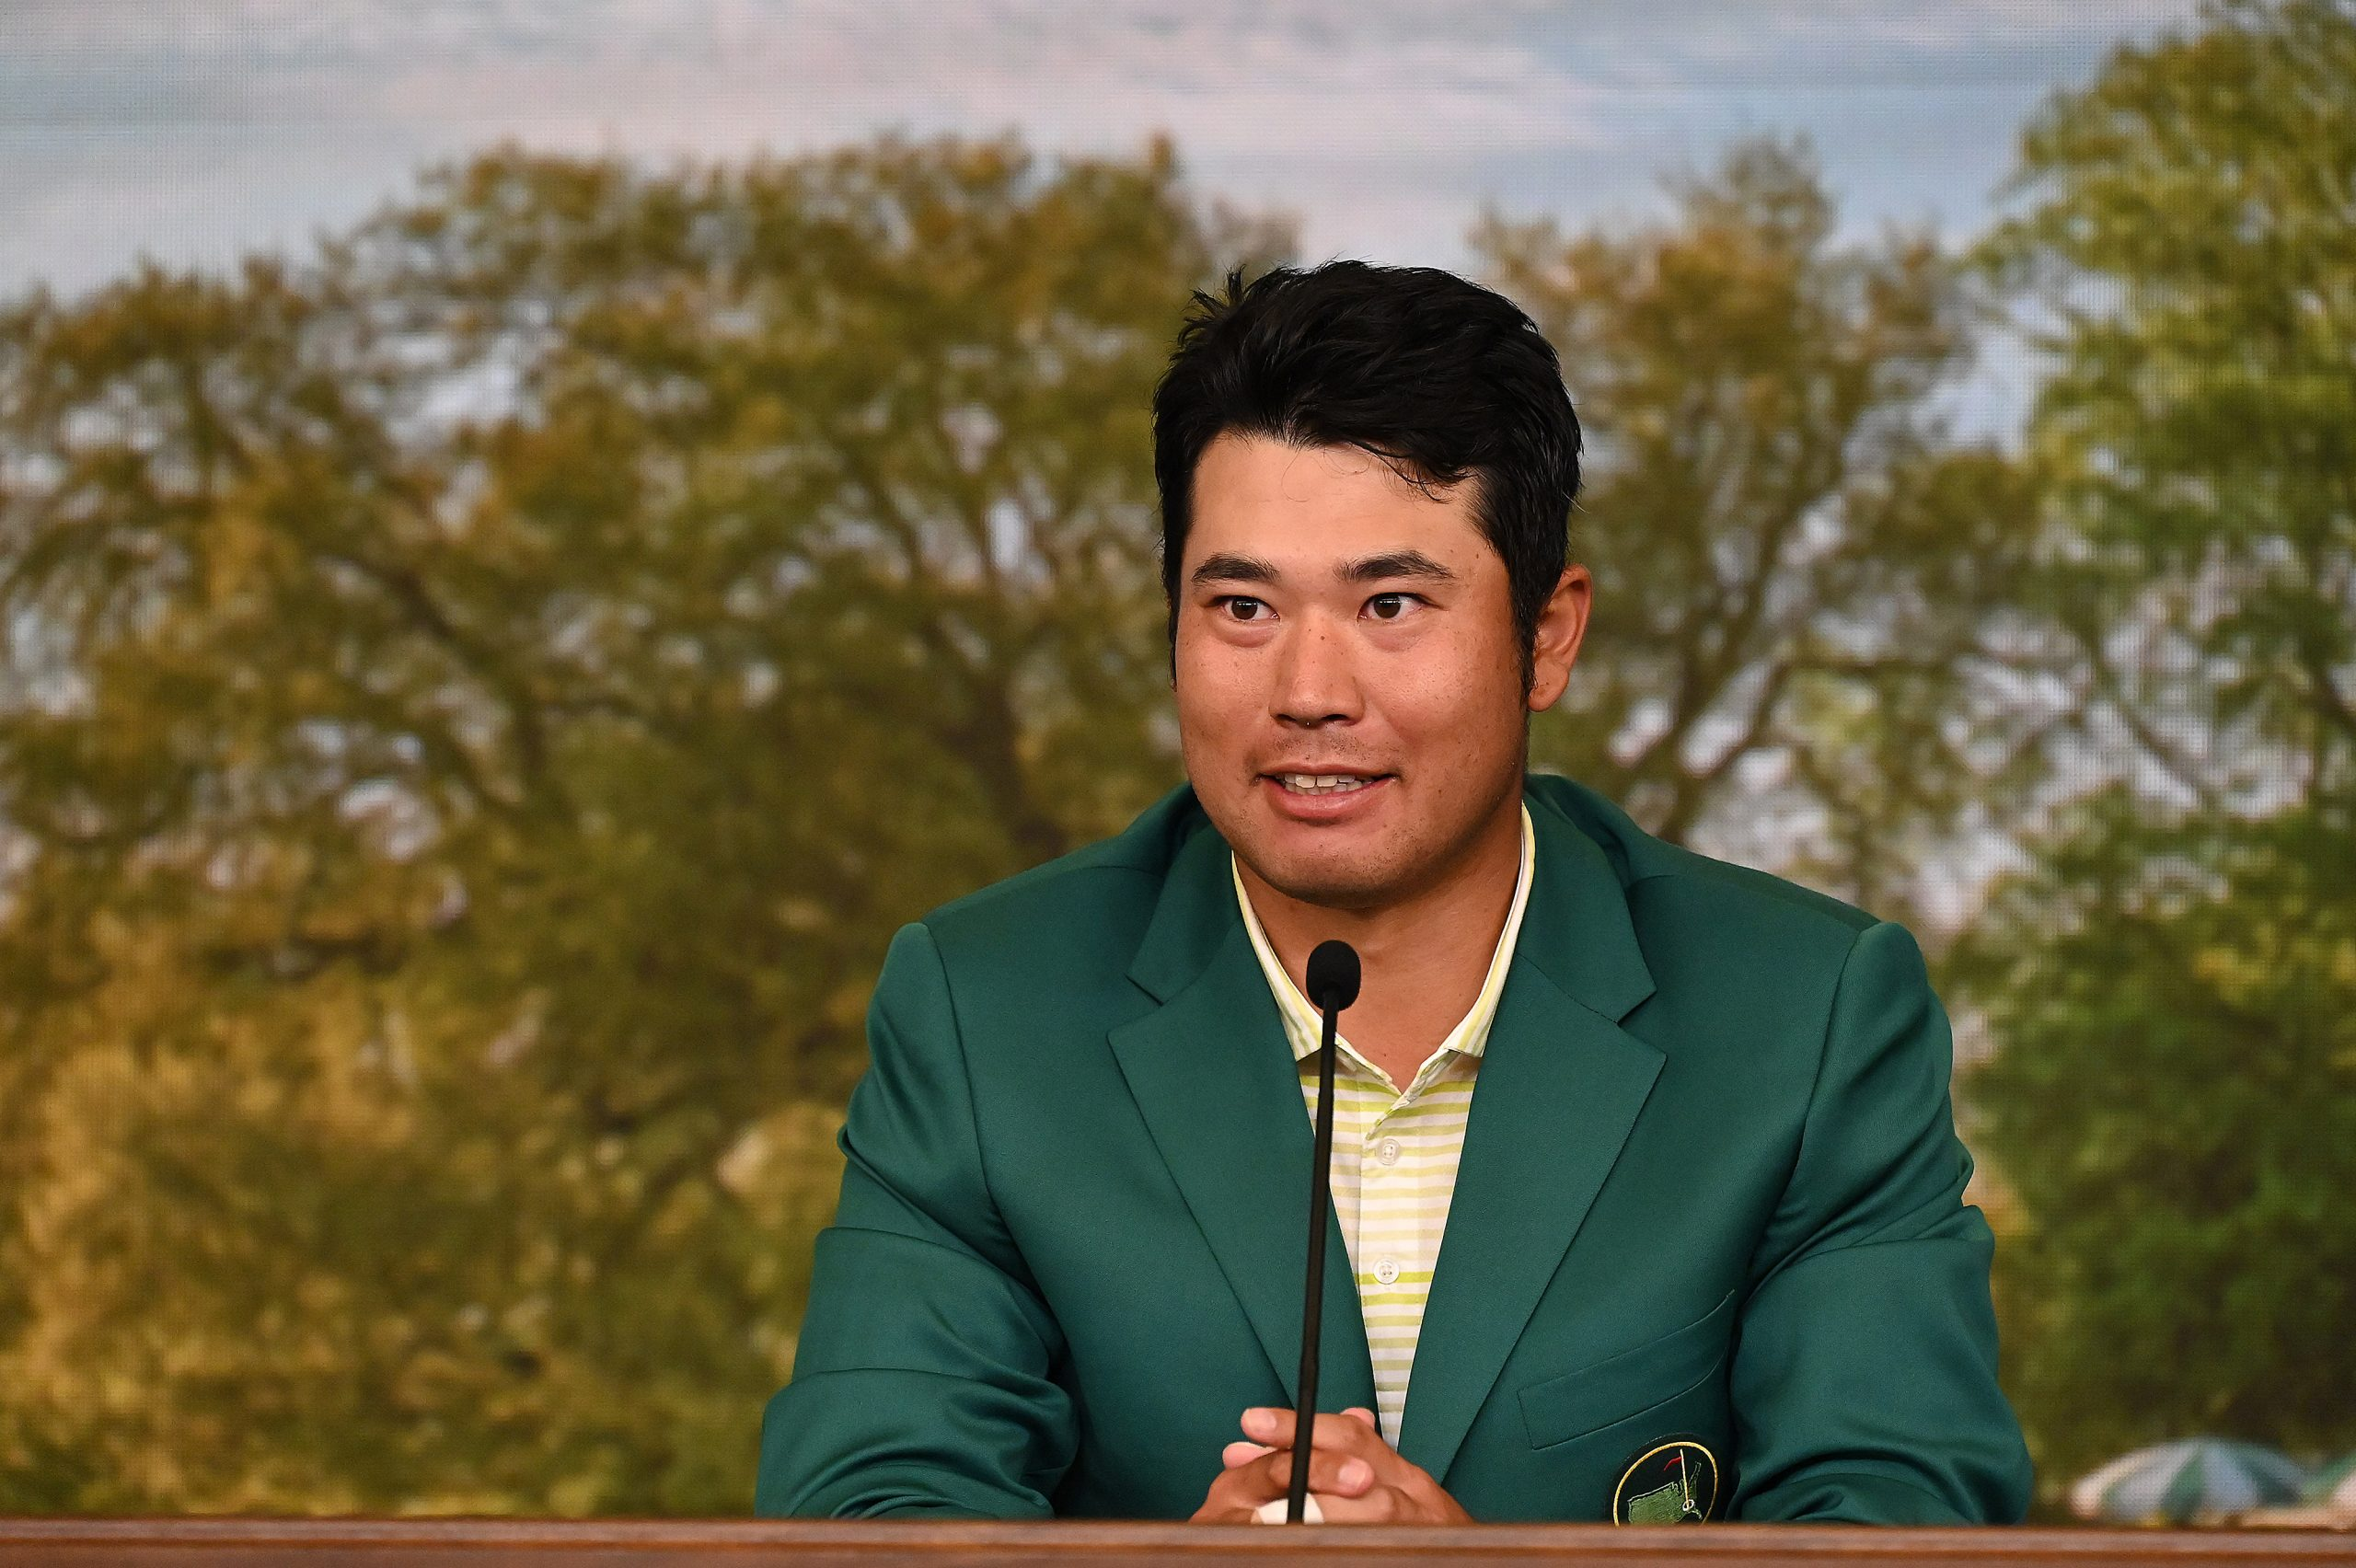 Matsuyama brings Japan its first glorious Green Jacket from Masters and writes a new chapter in Asian golf history